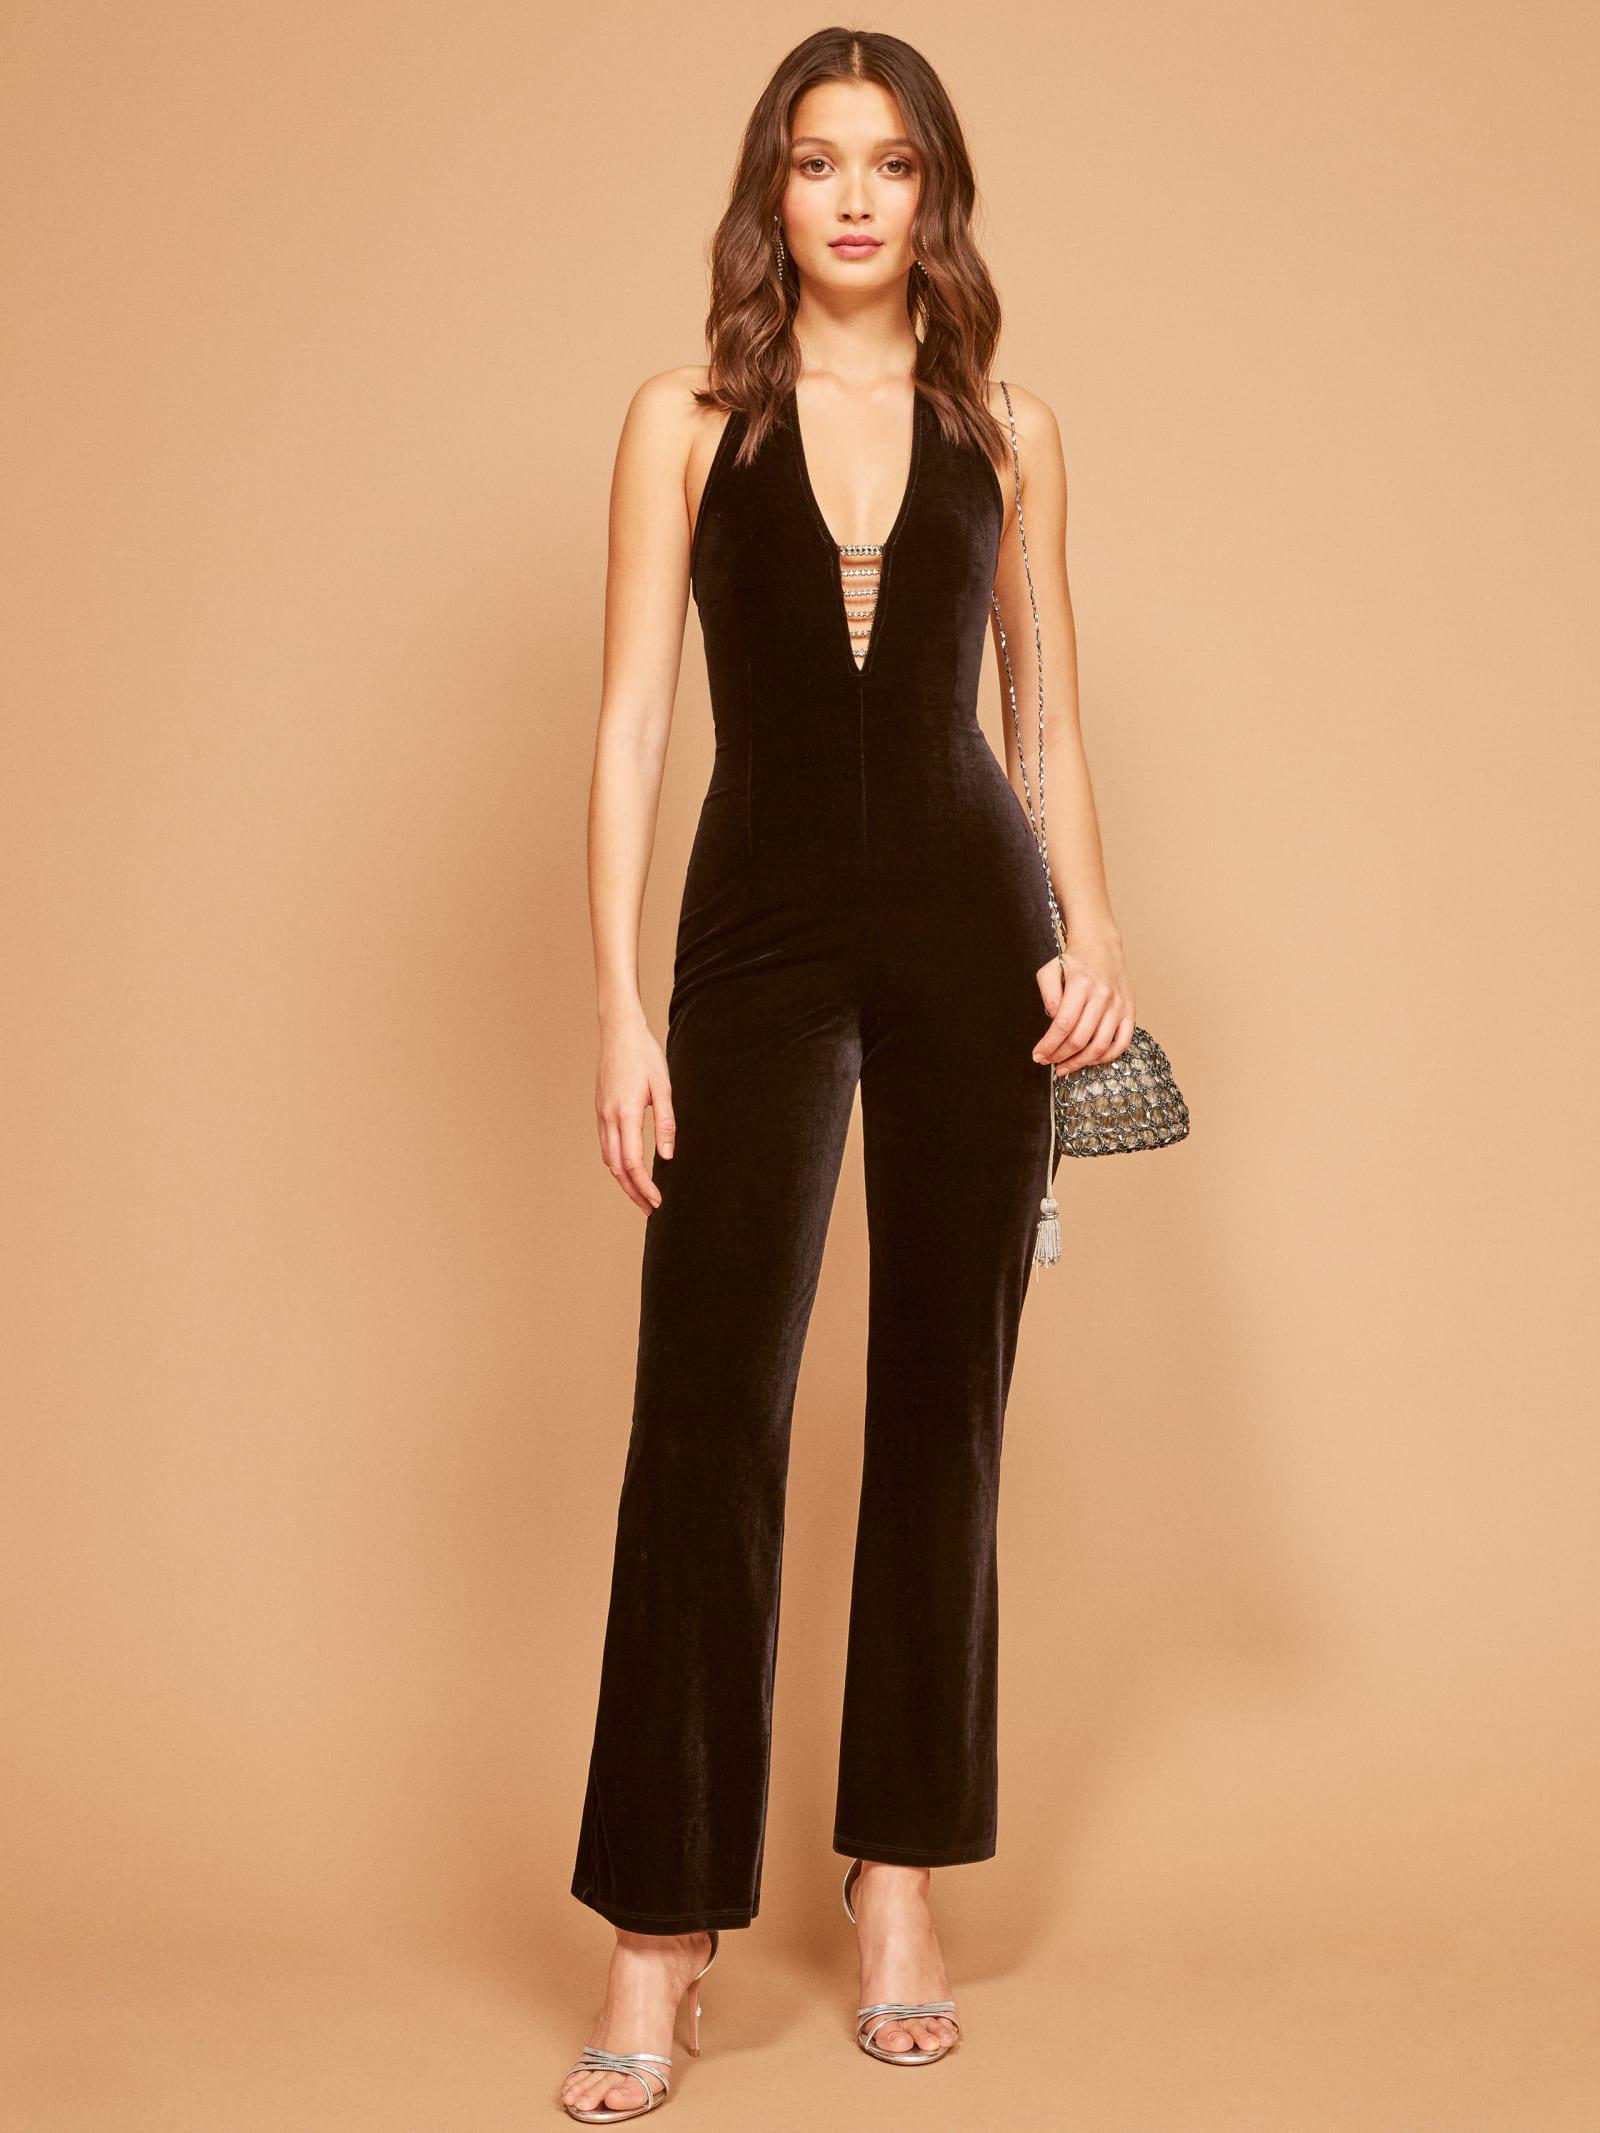 99a9bc47a9 Lyst - Reformation Vintage Minx Jumpsuit in Black